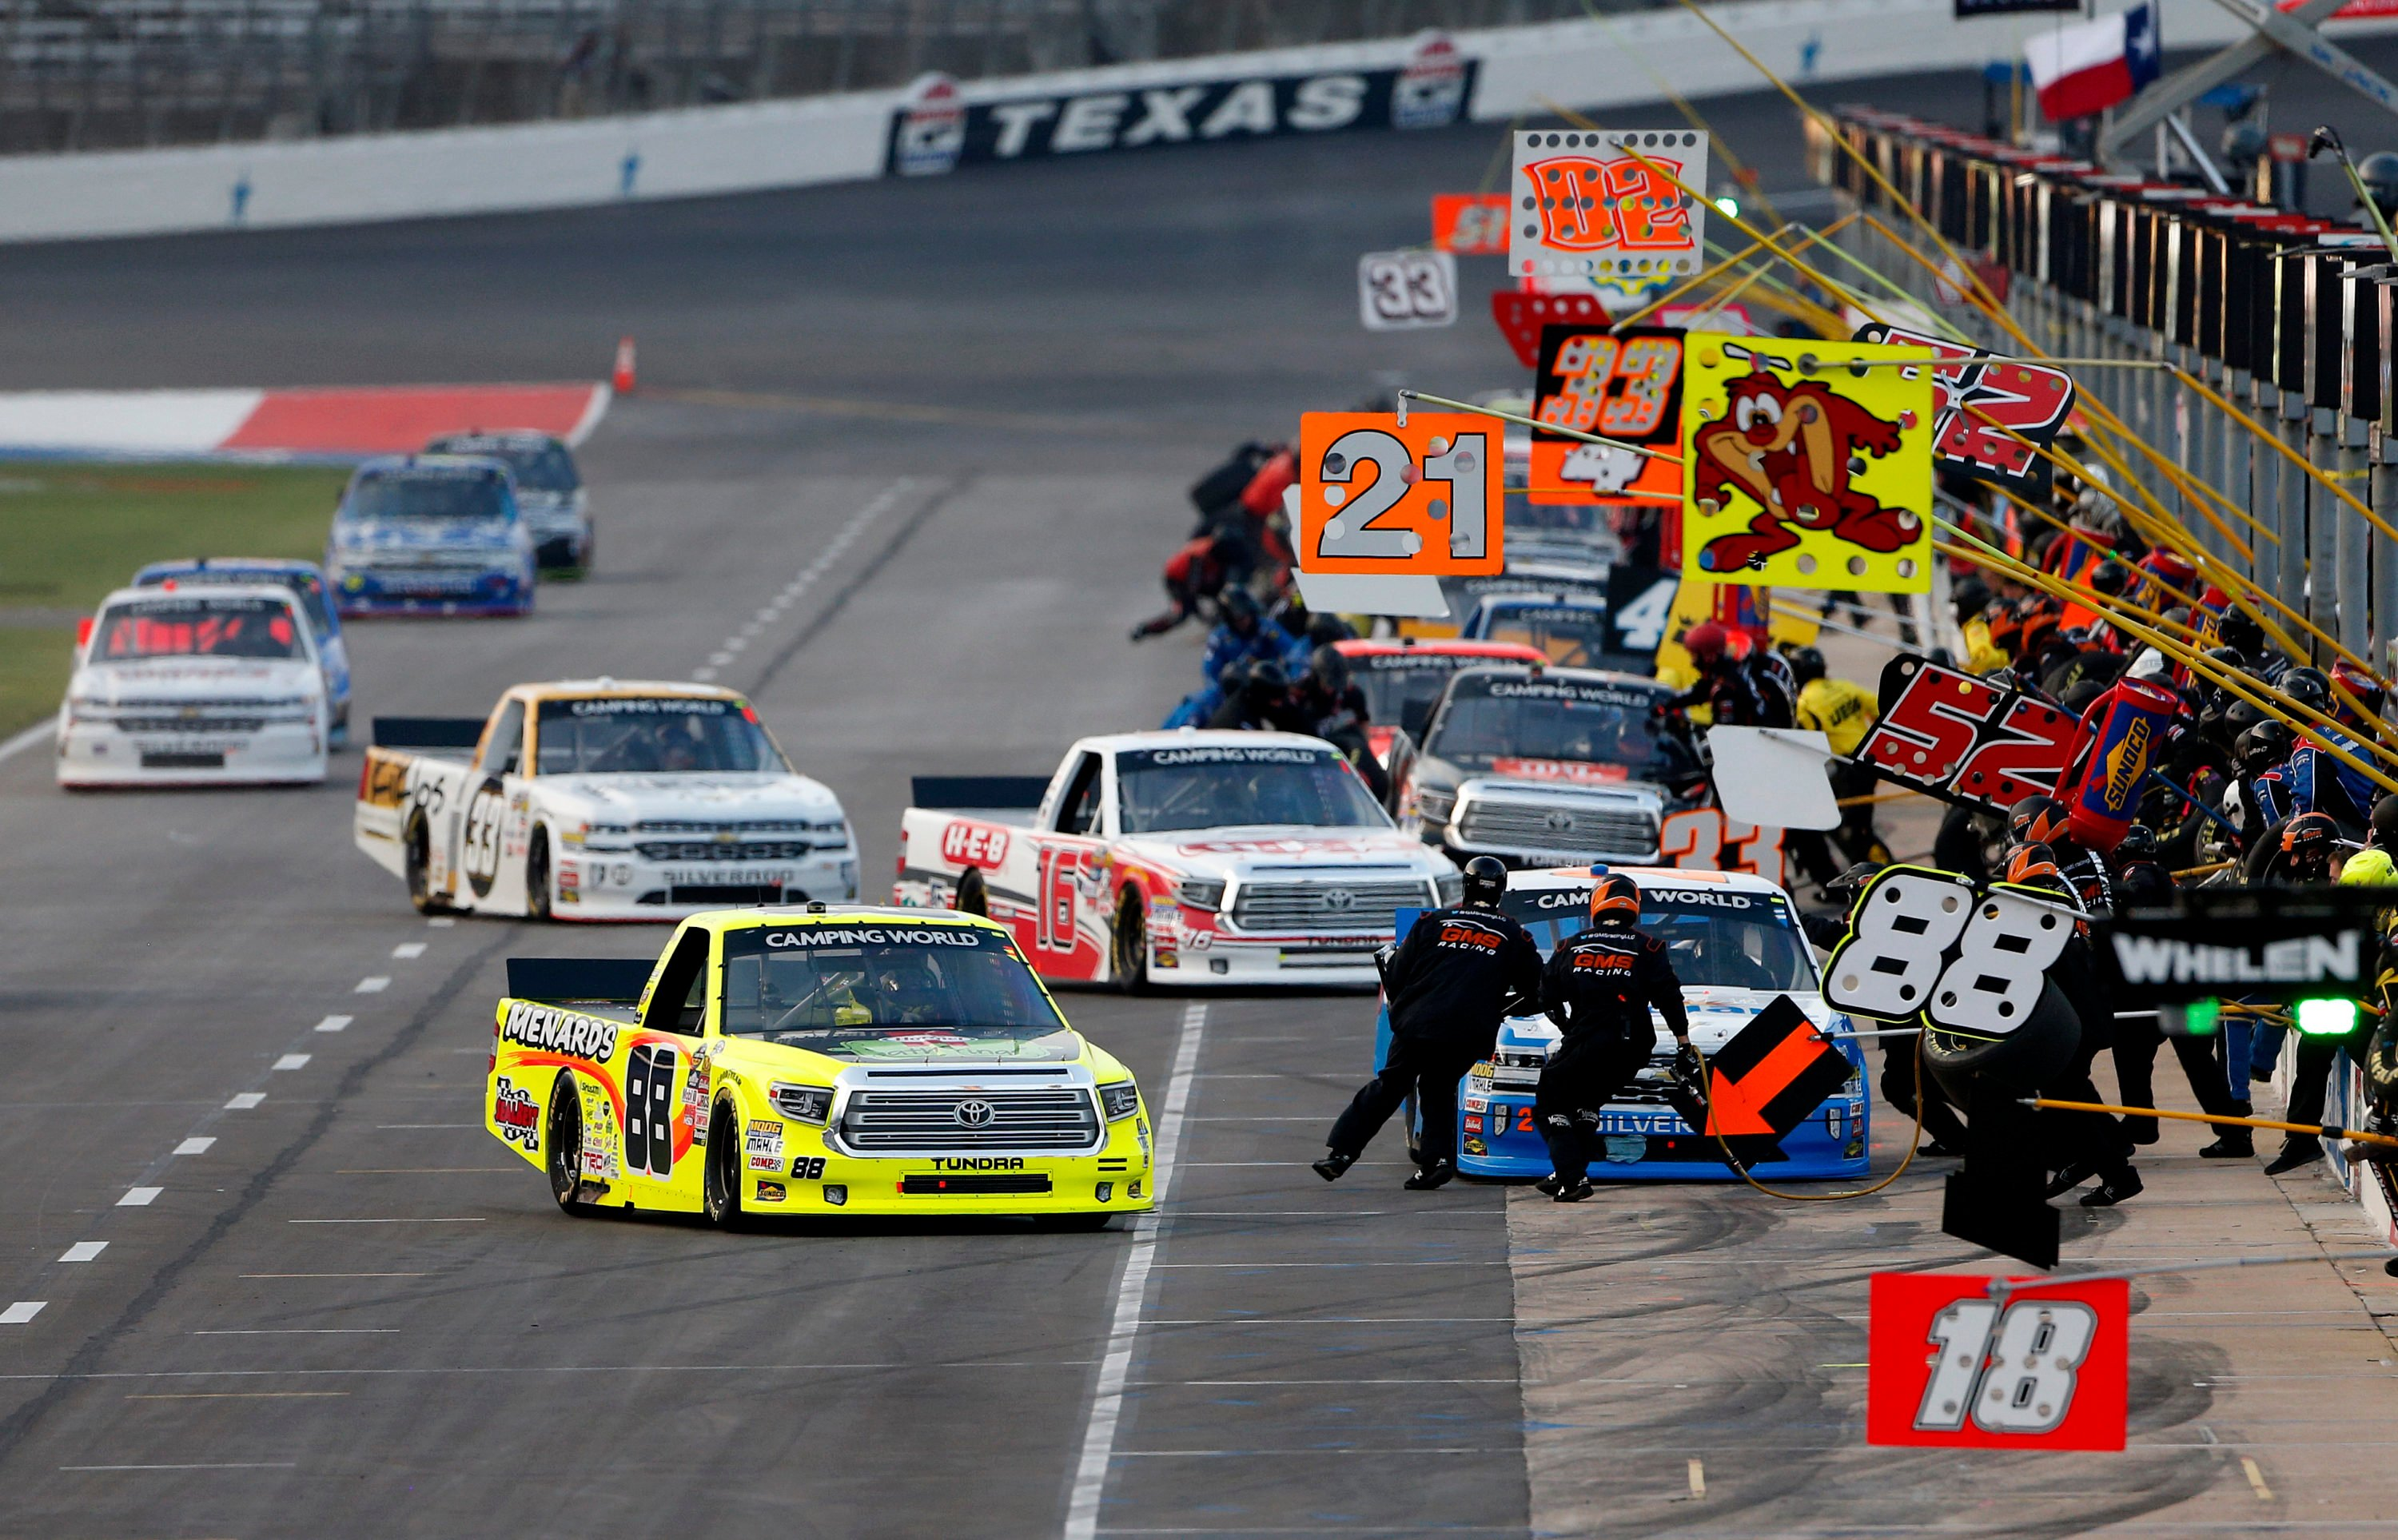 Kevin Harvick fends off Blaney in overtime to win at Texas